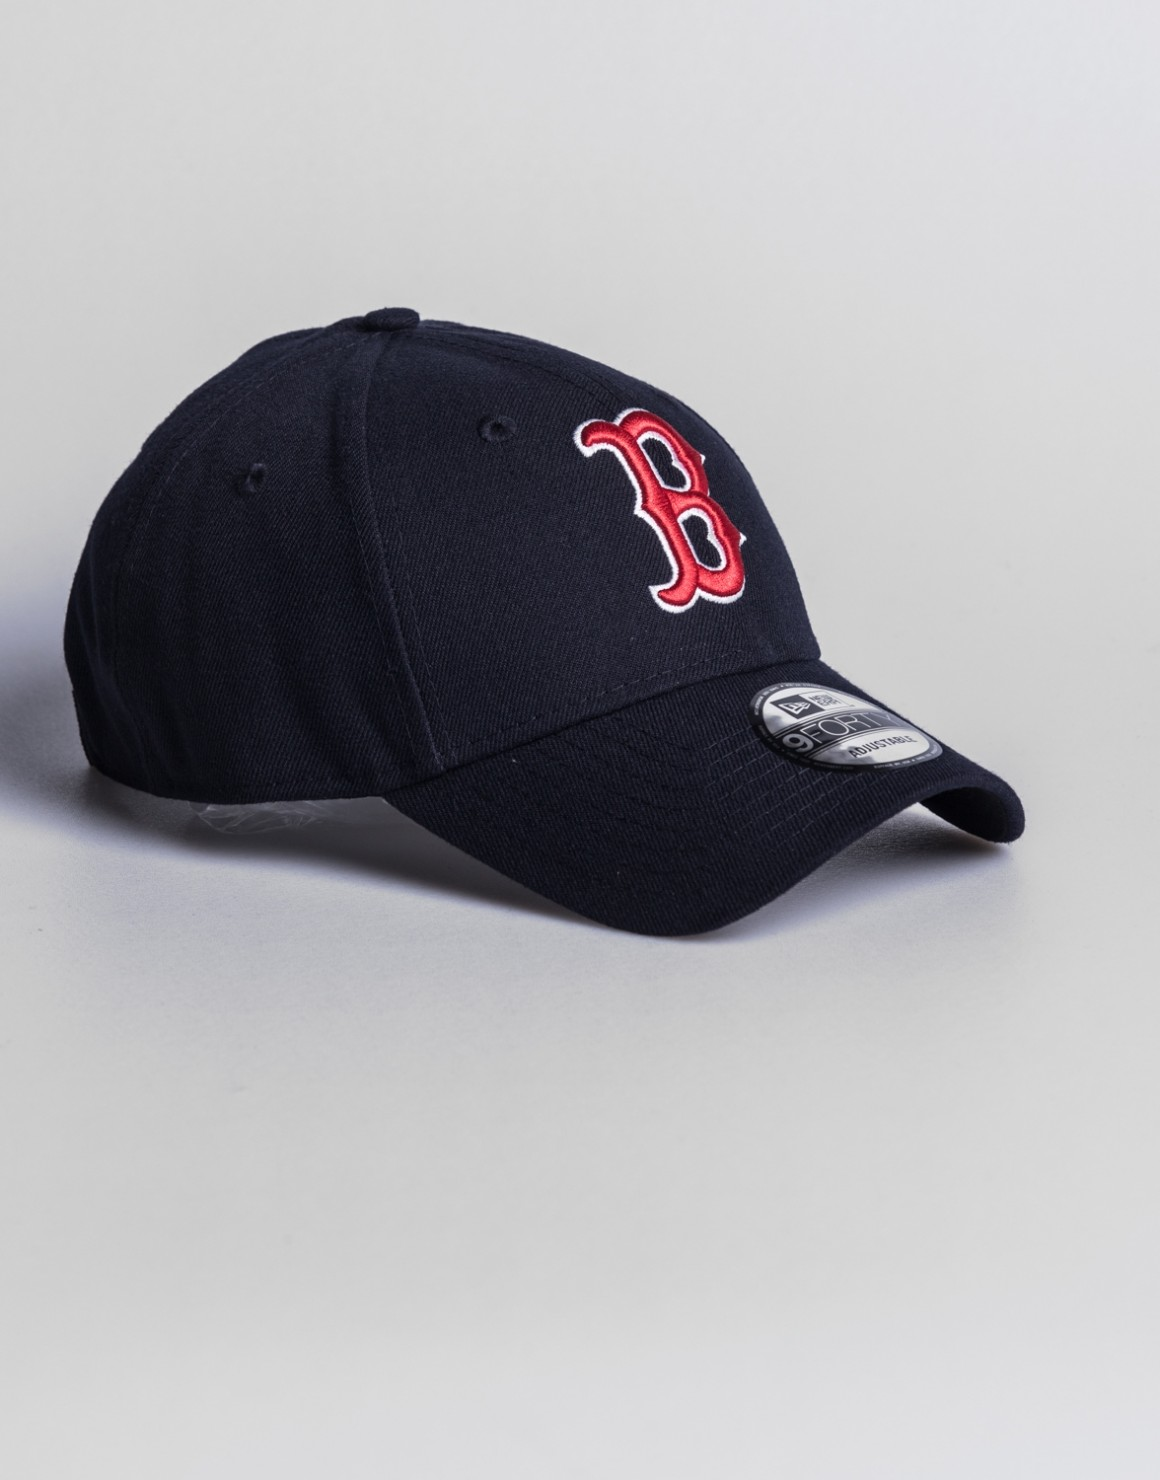 940 The League Bosten Red Sox Cap